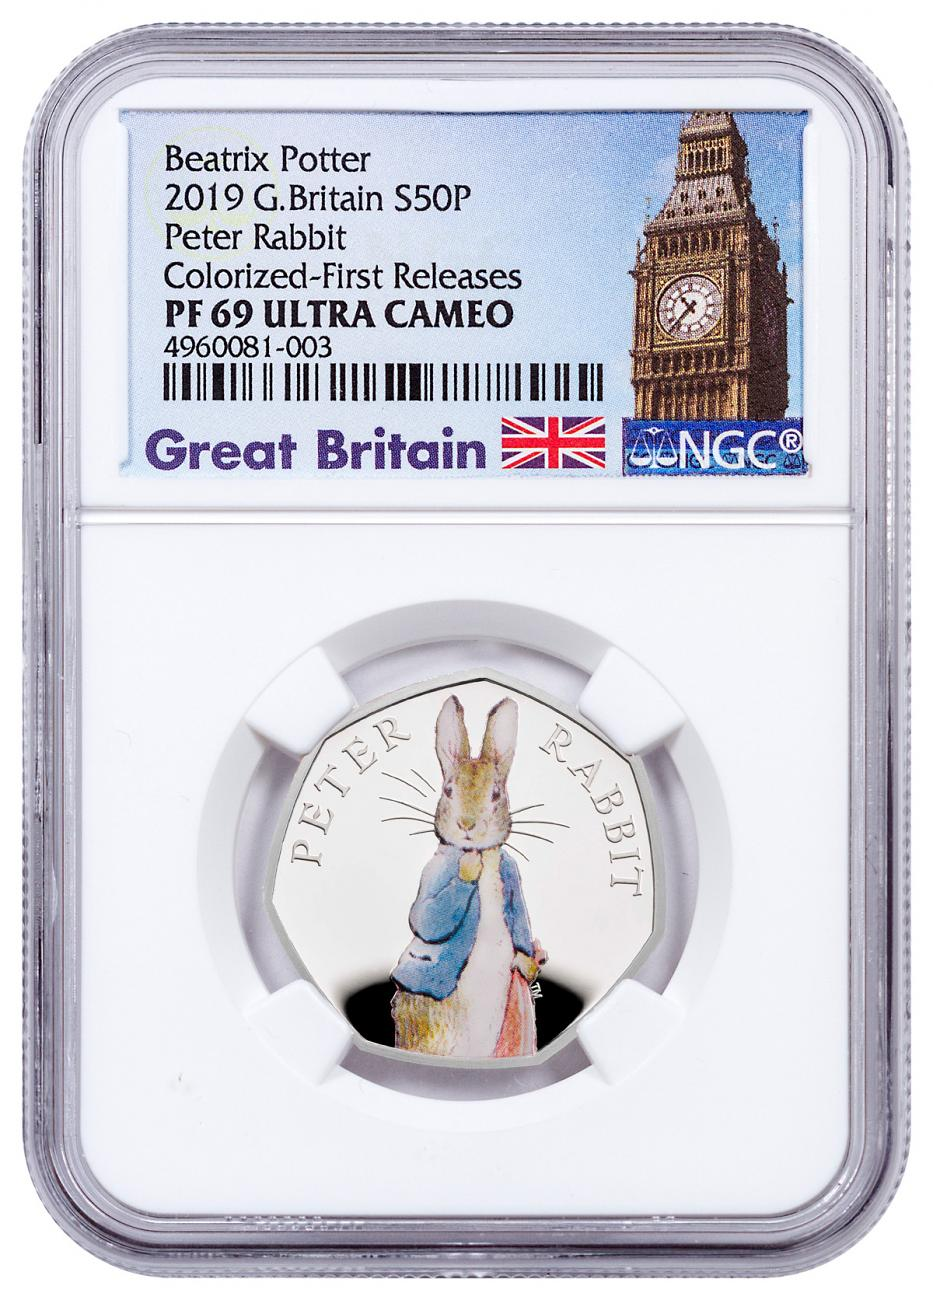 2019 Great Britain Beatrix Potter - Peter Rabbit 8 g Silver Colorized Proof 50p Coin NGC PF69 UC FR Exclusive Big Ben Label